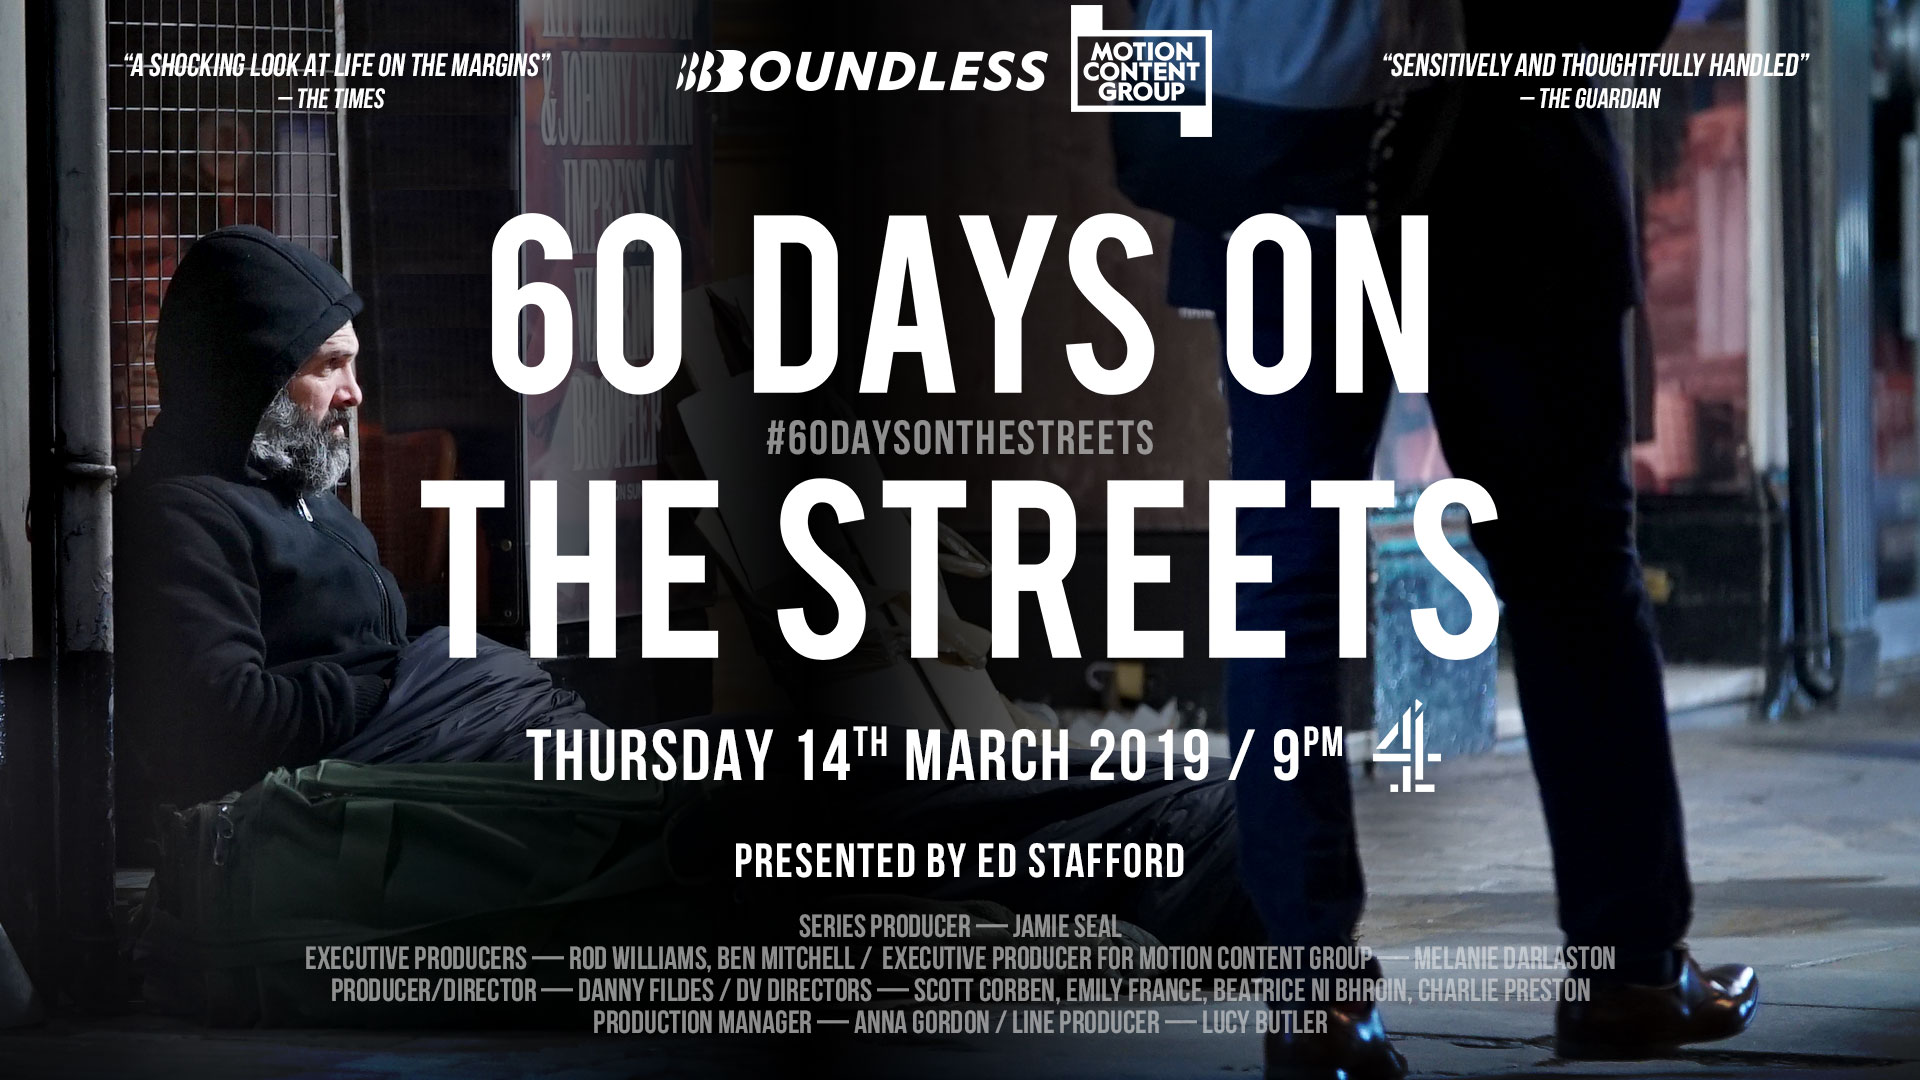 Boundless-60-Days-on-the-Streets-TX-card-v4-Mar-19 FINAL (1).jpg